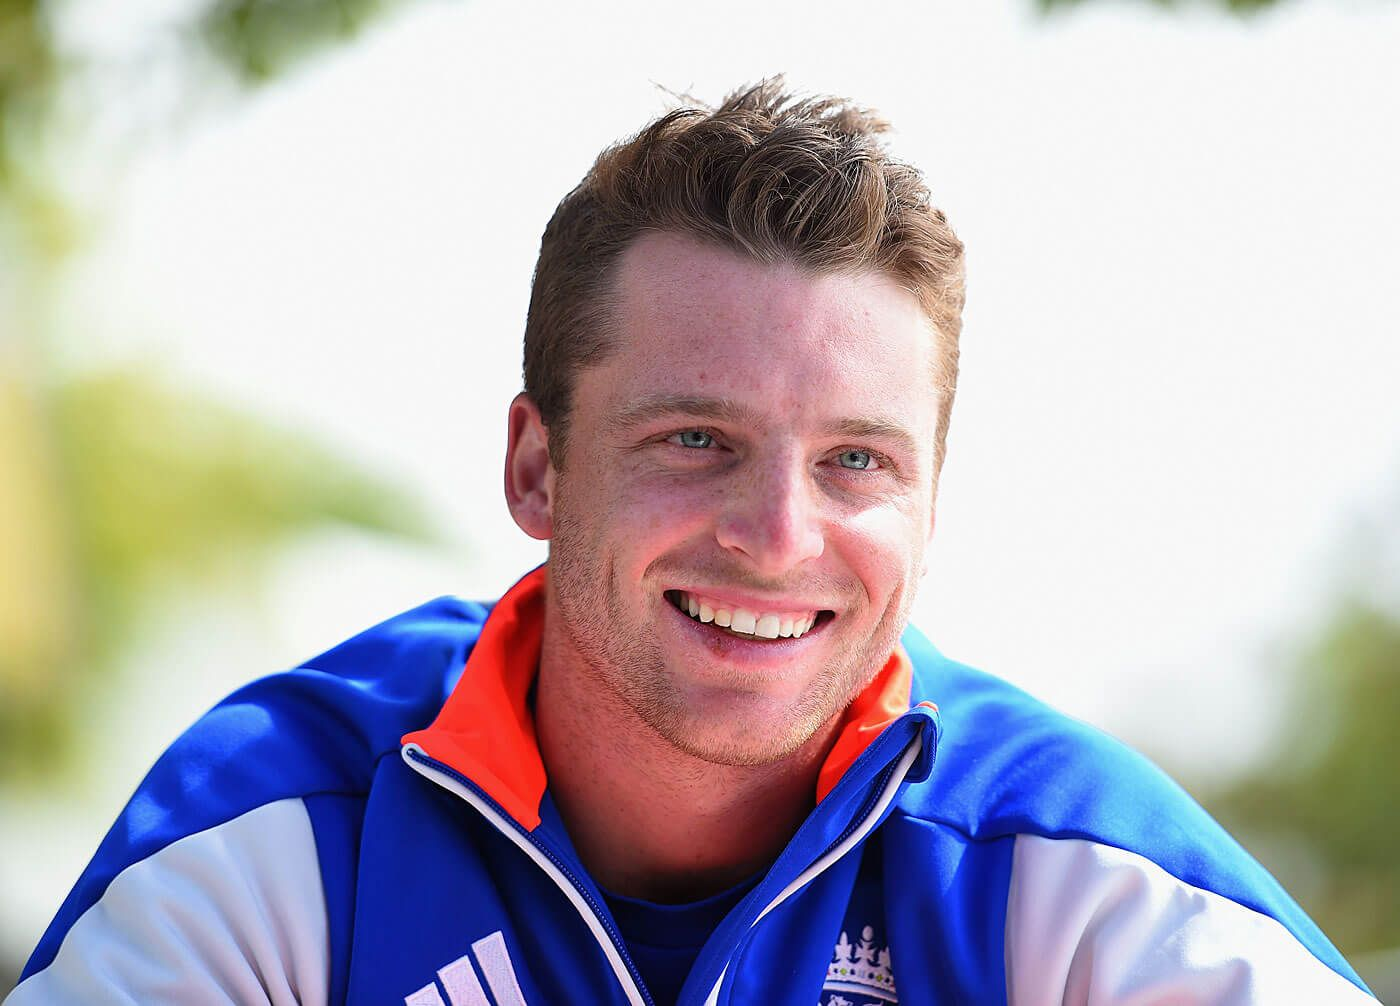 Jos Buttler Biography, Age, Weight, Height, Friend, Like